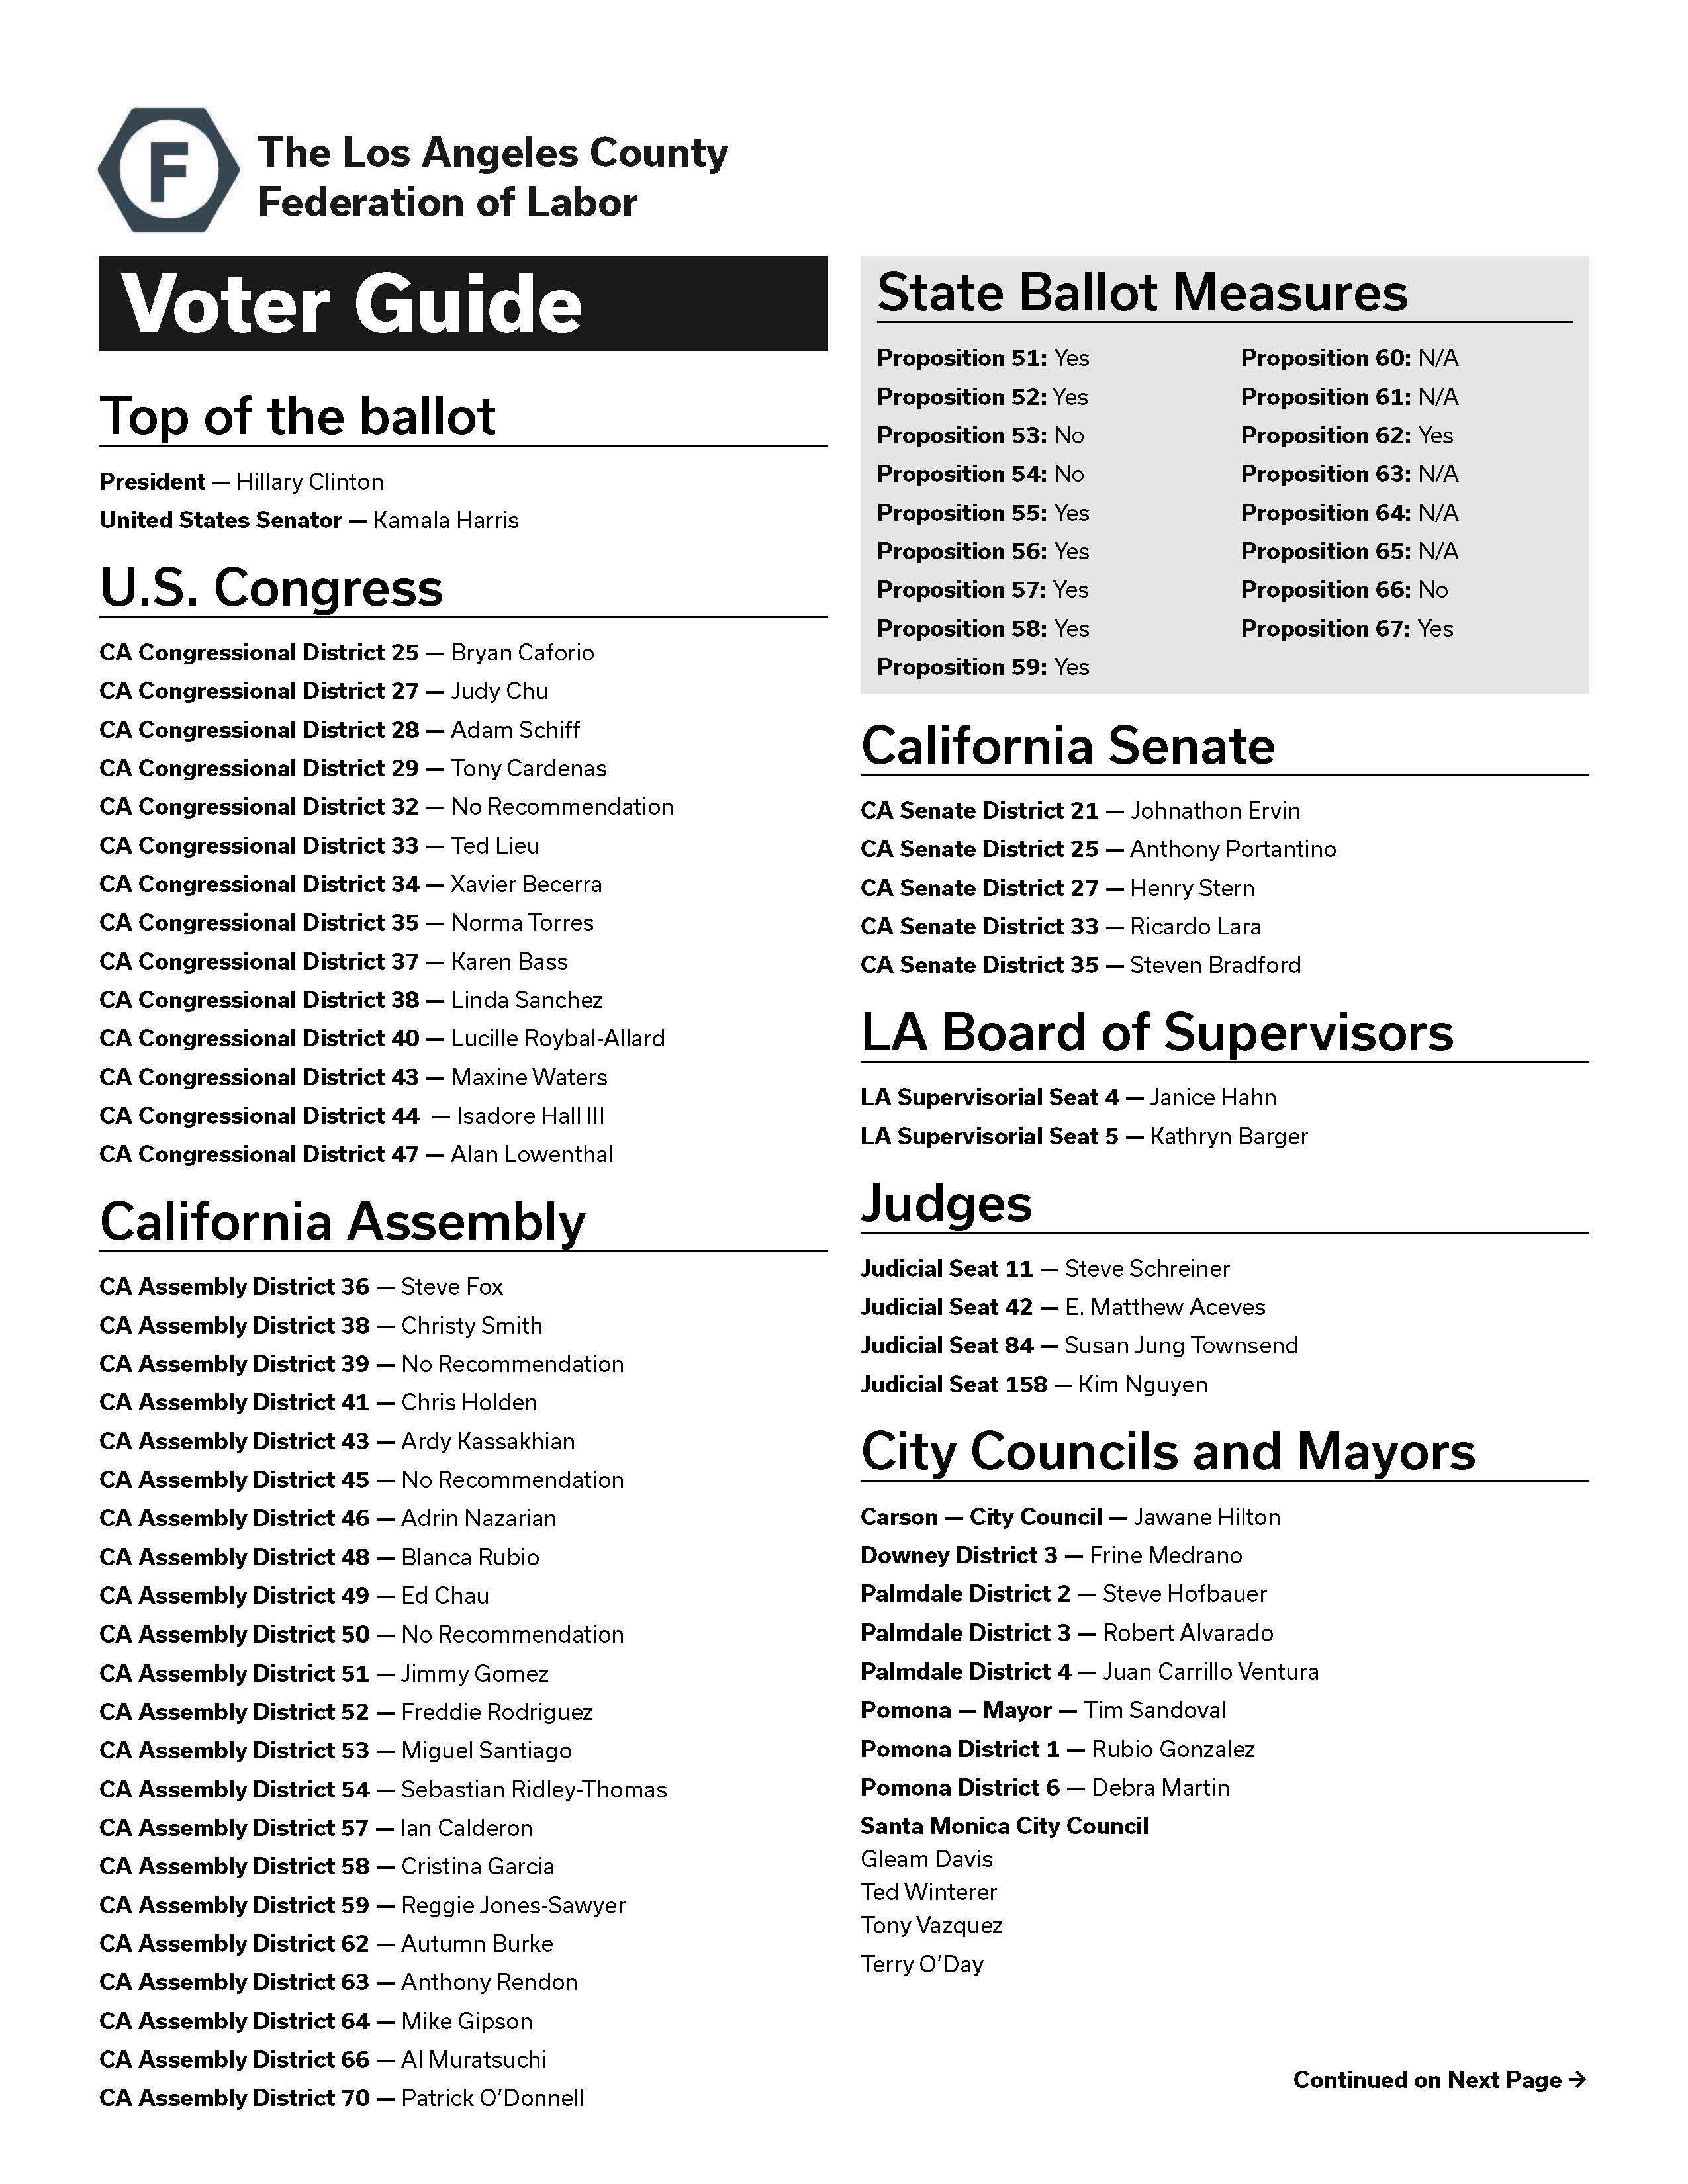 lafed-voter-guide-1g_page_1